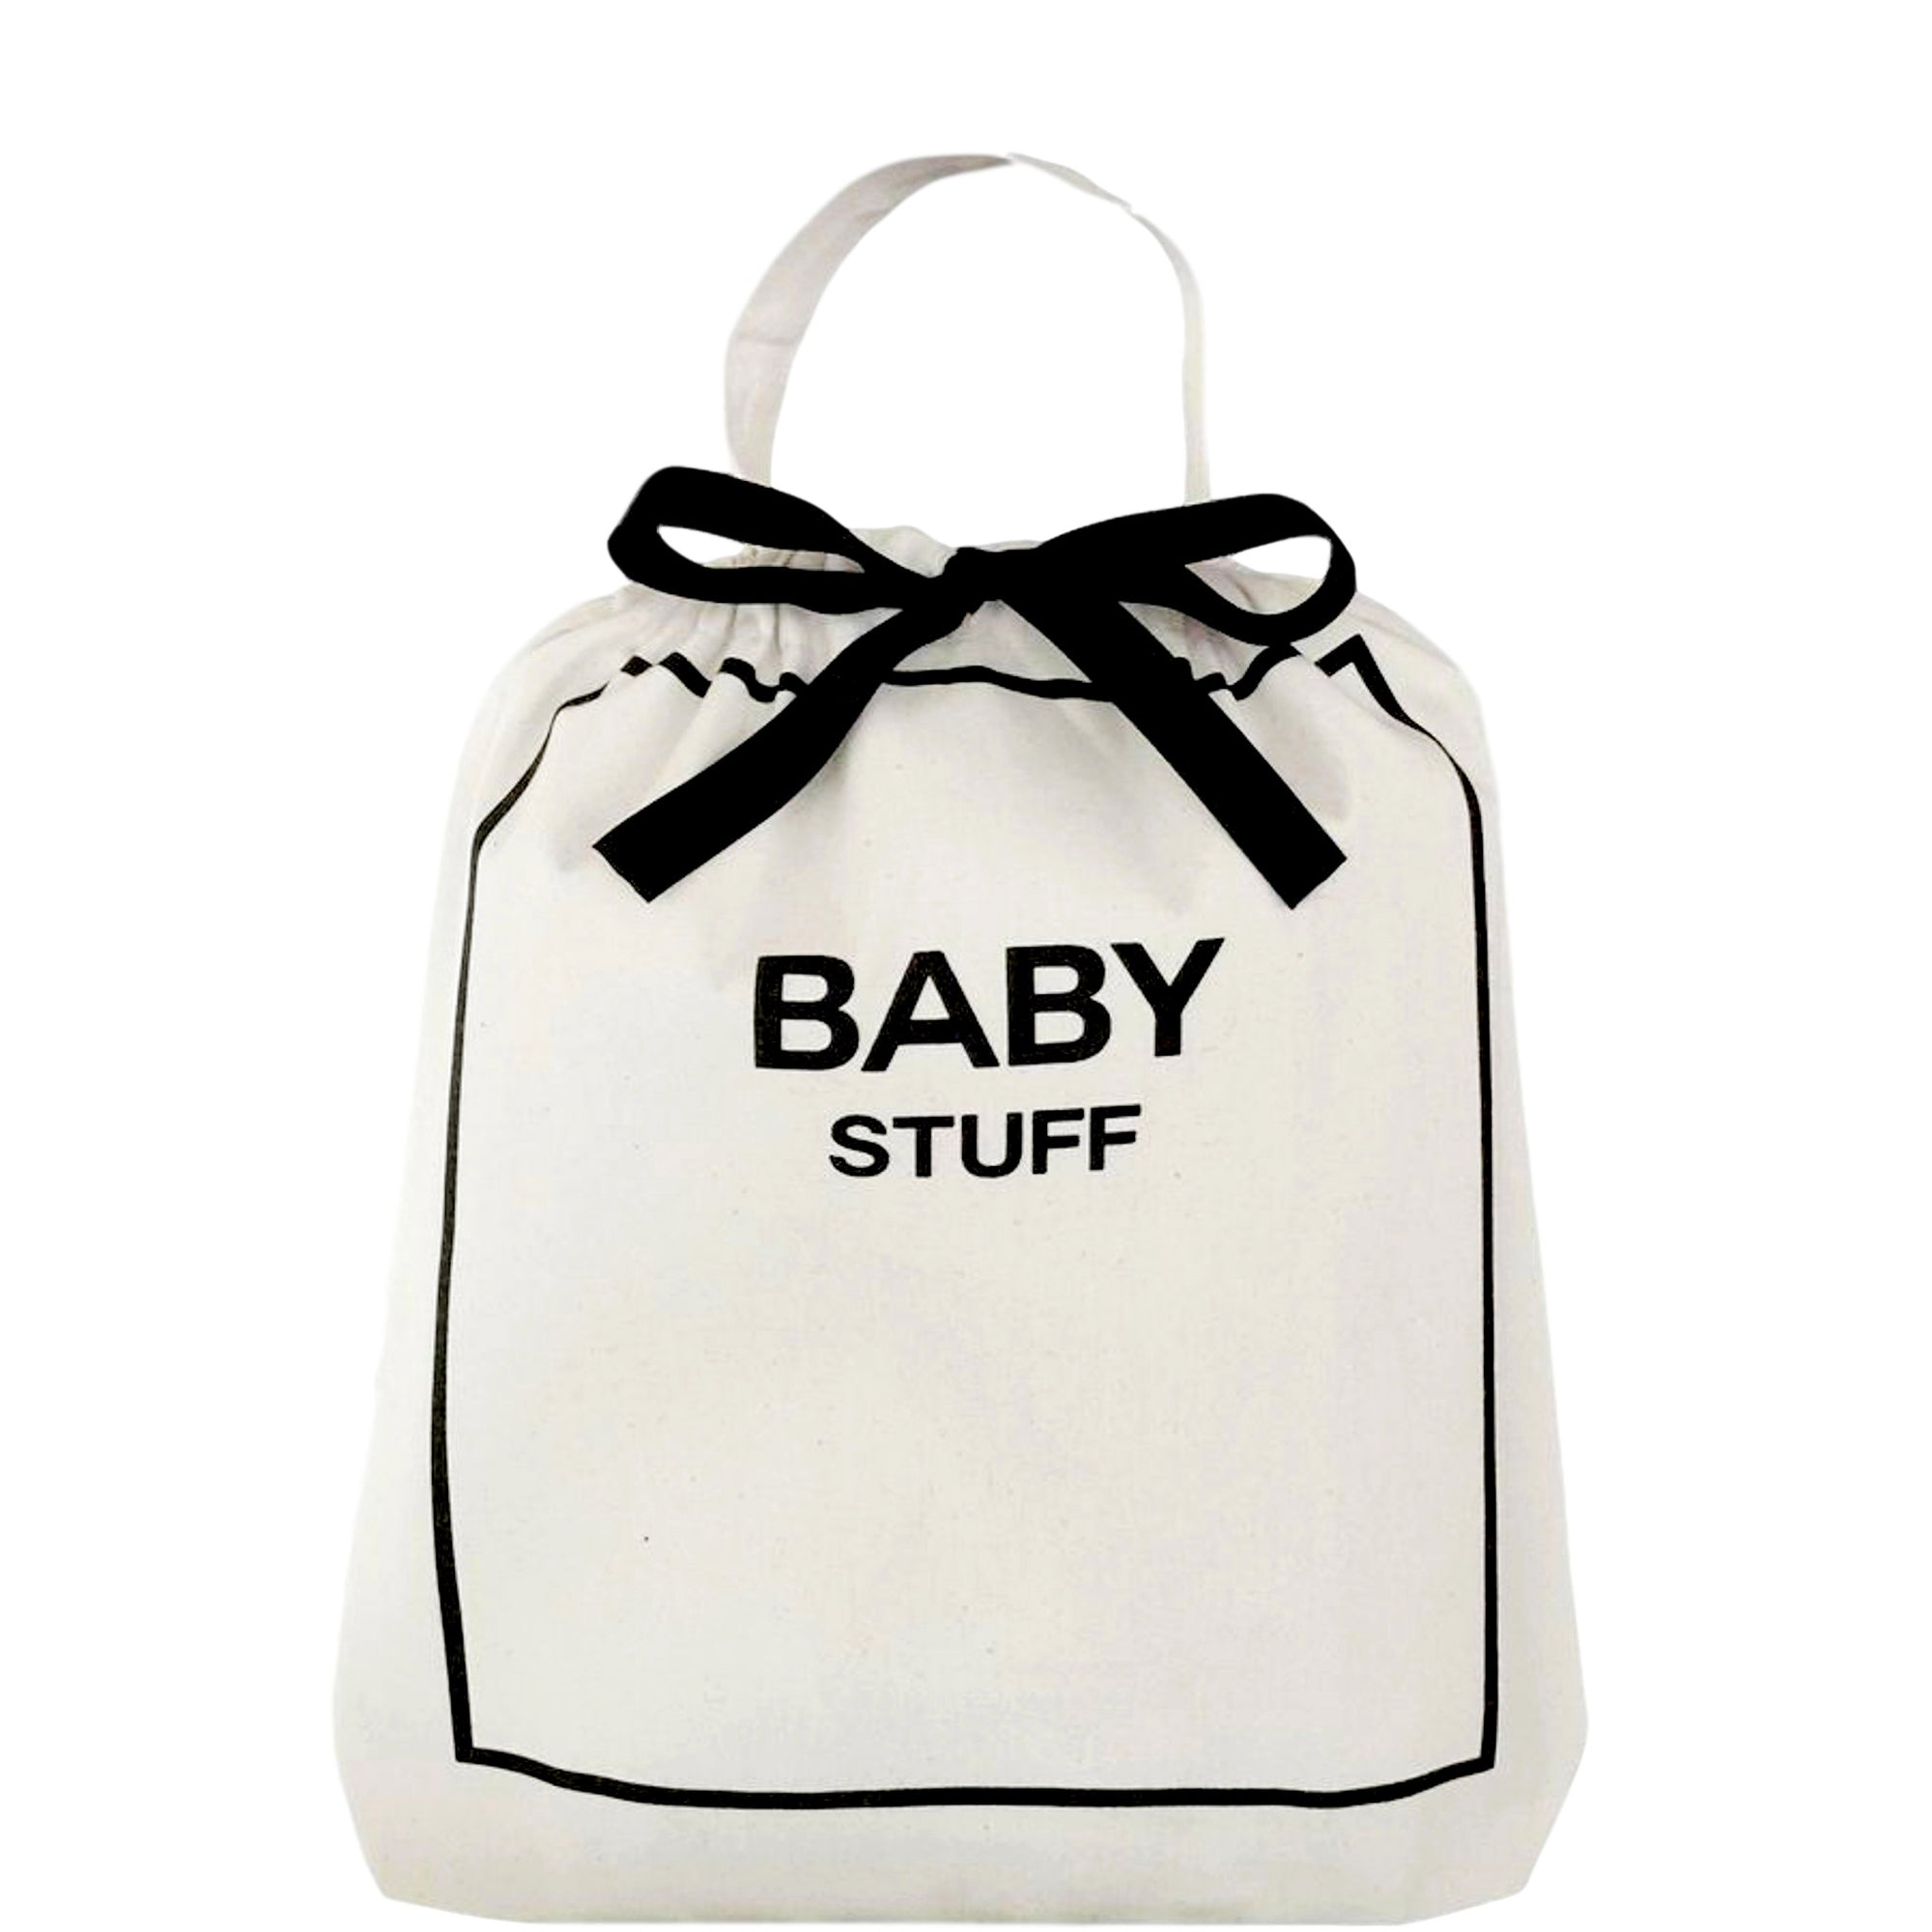 Baby organizing bag in a duffle bag.